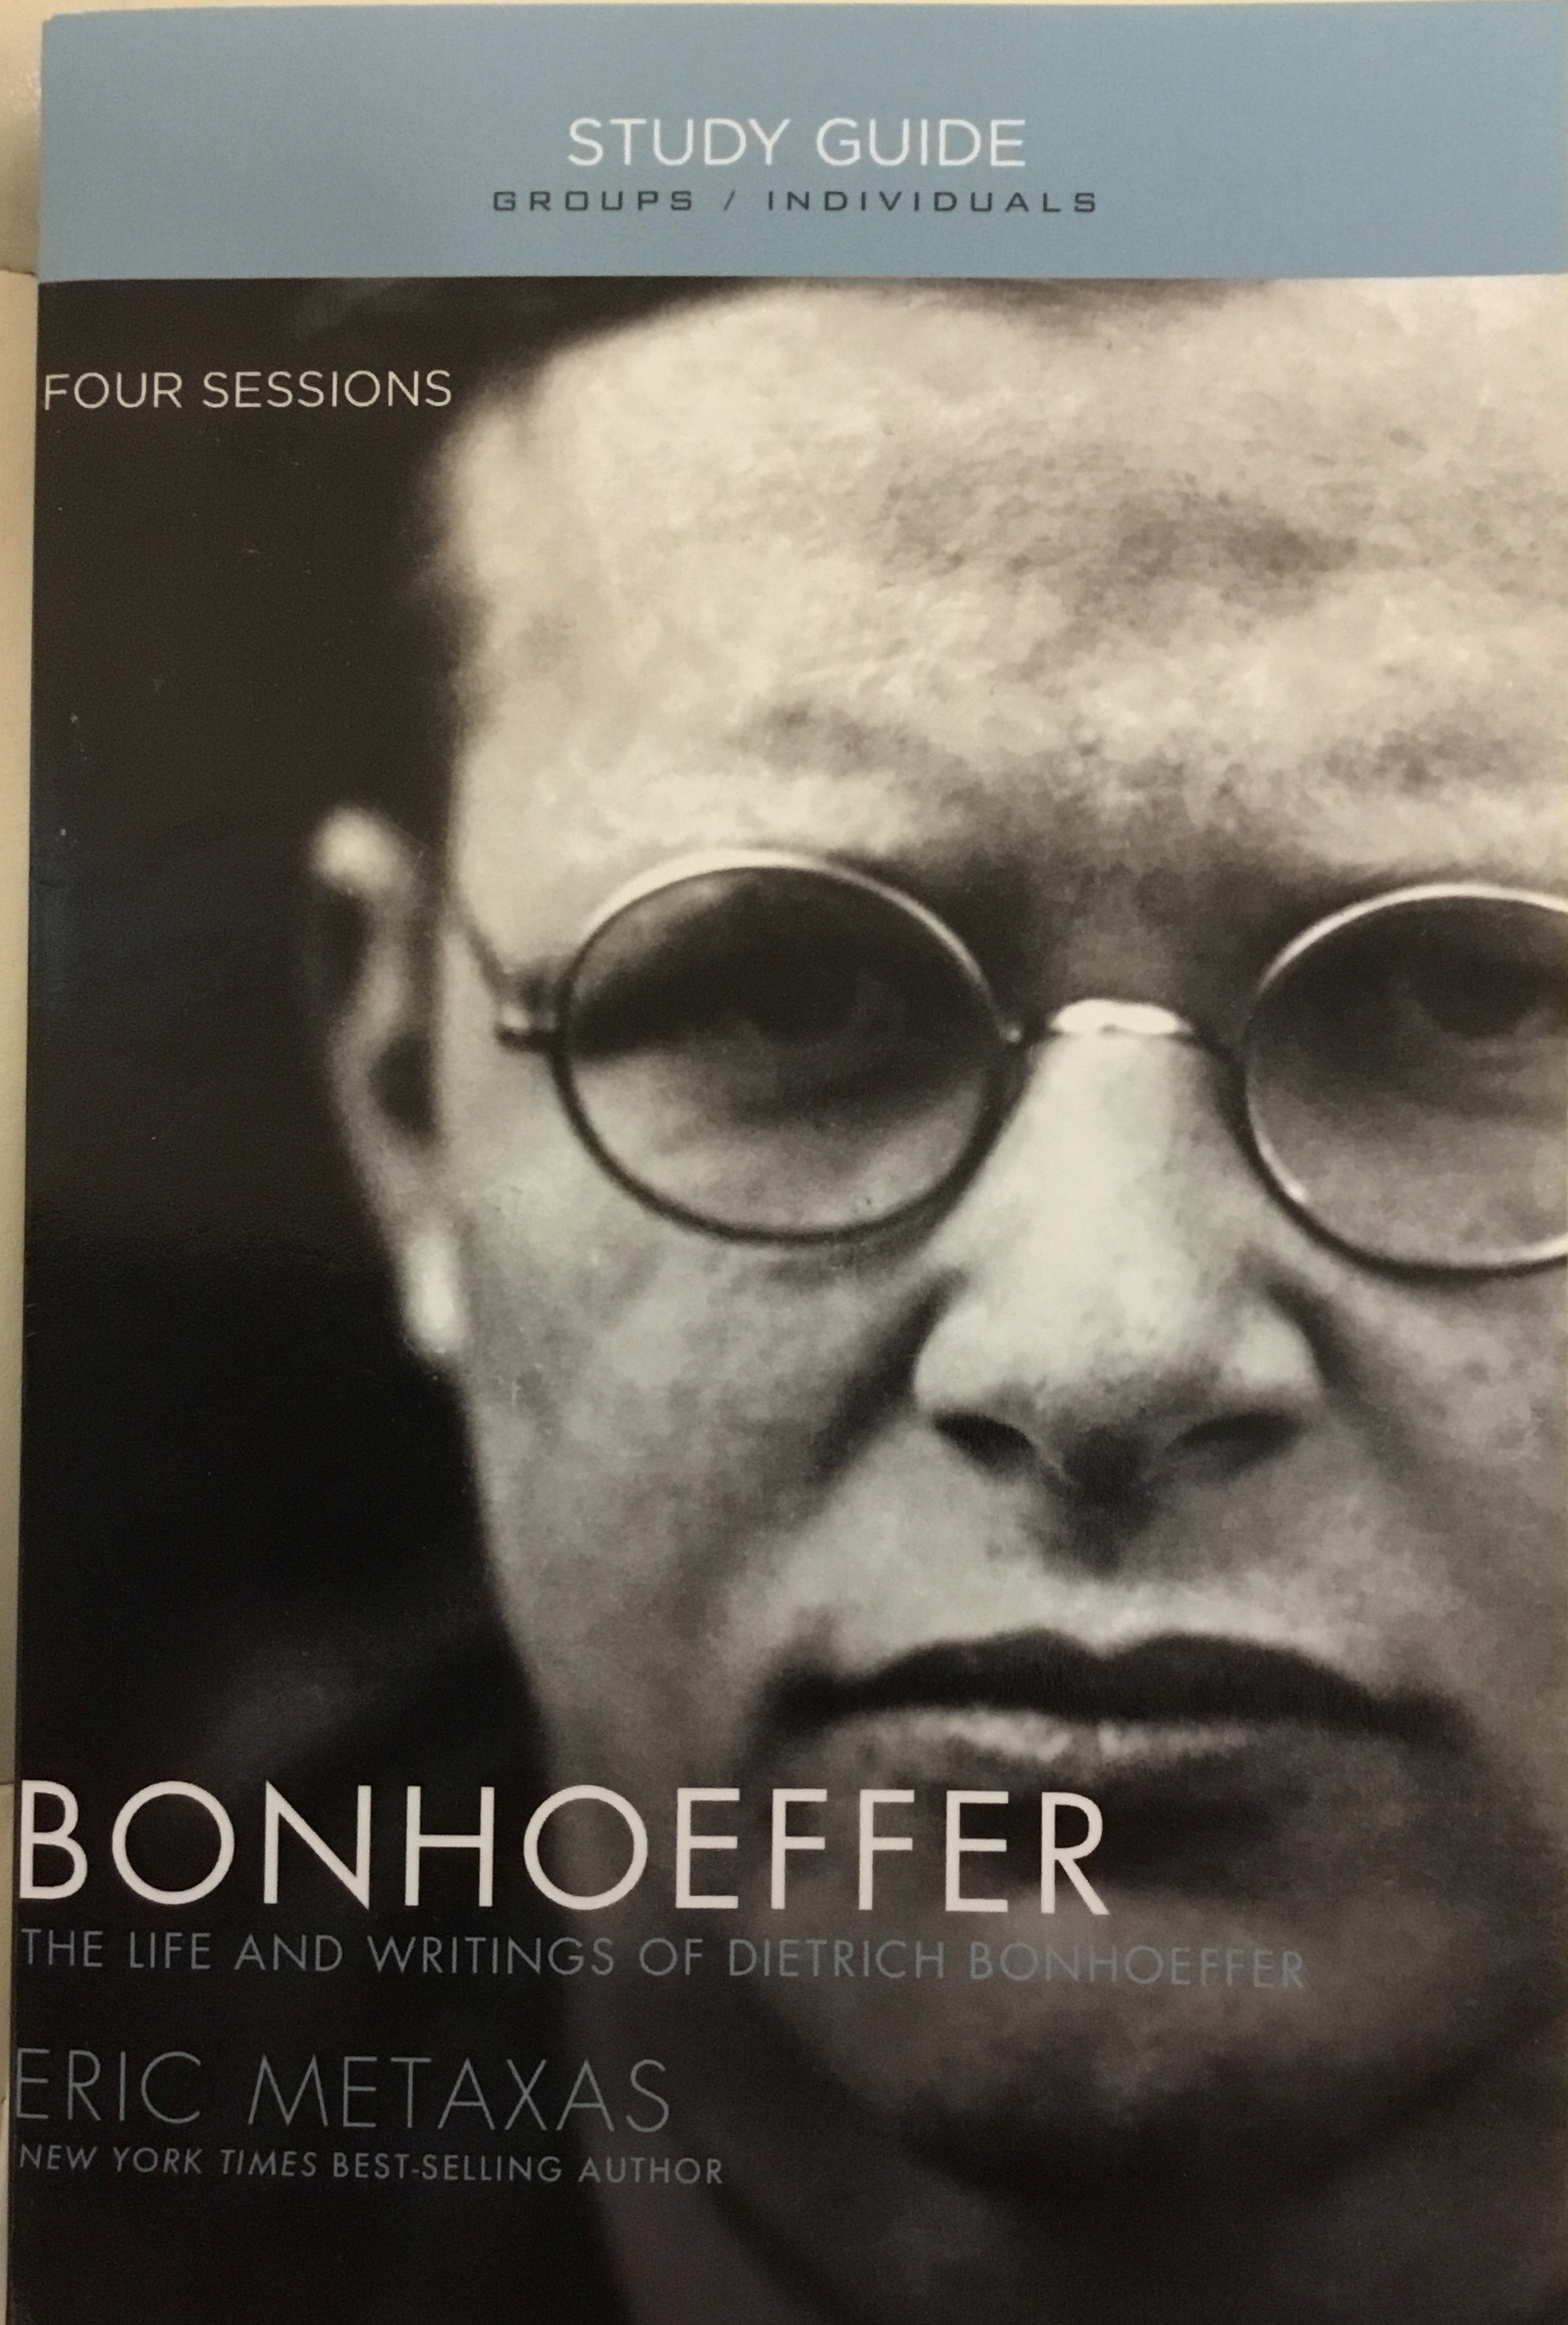 Bonhoeffer: The life and writings